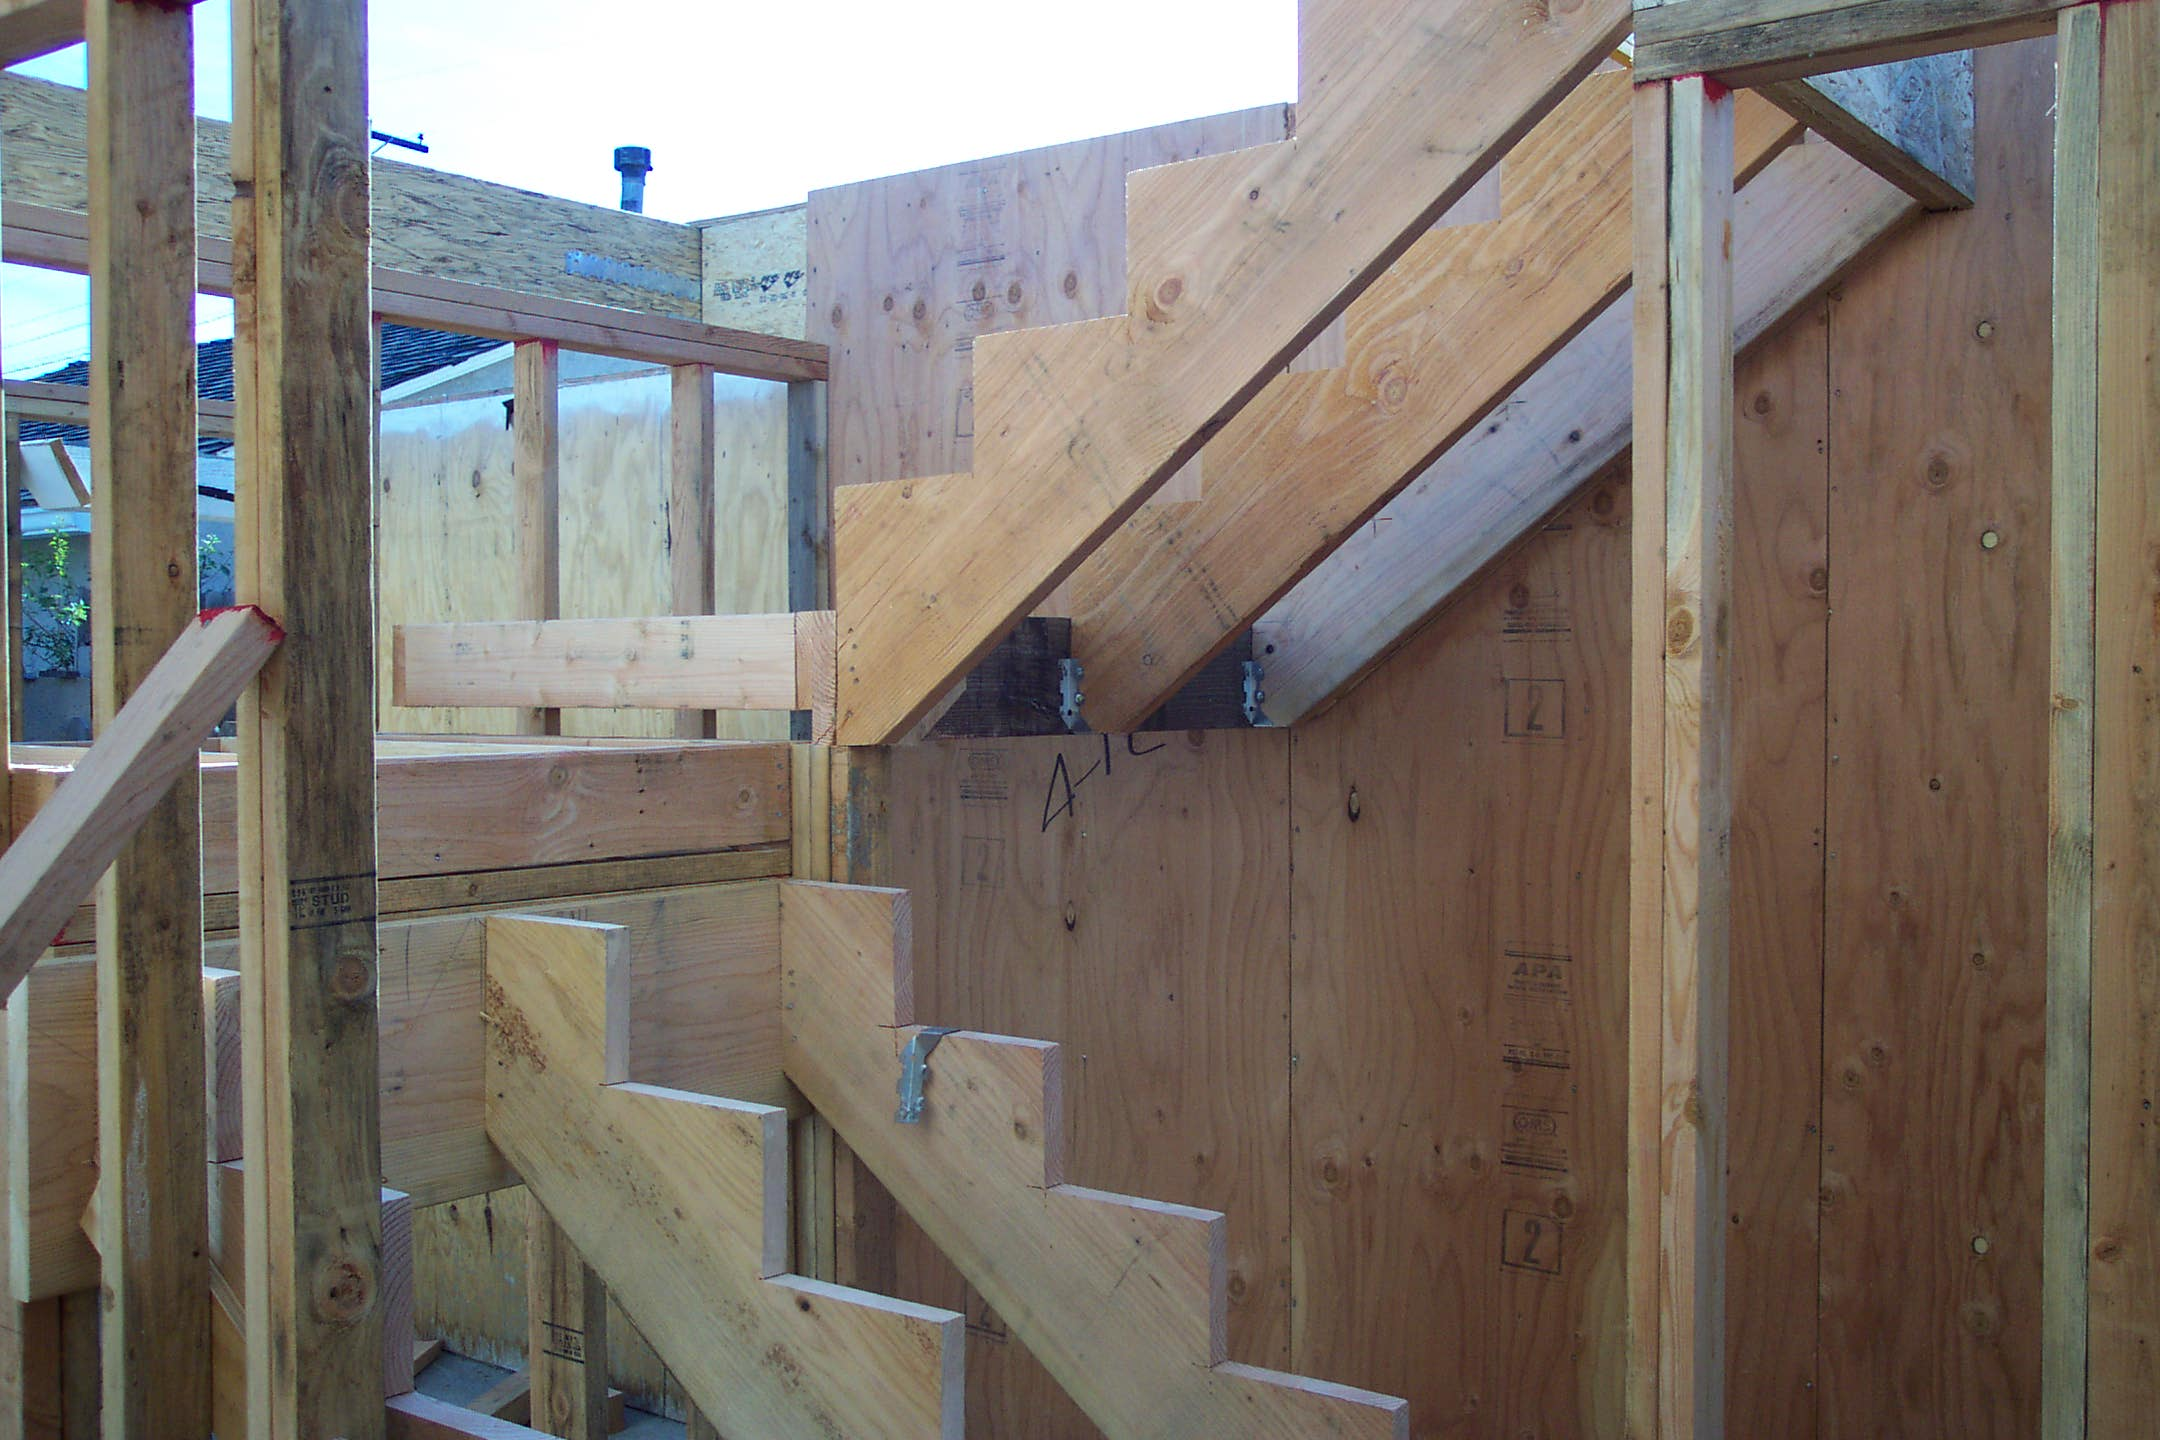 Stair Landing And Stringers In Place